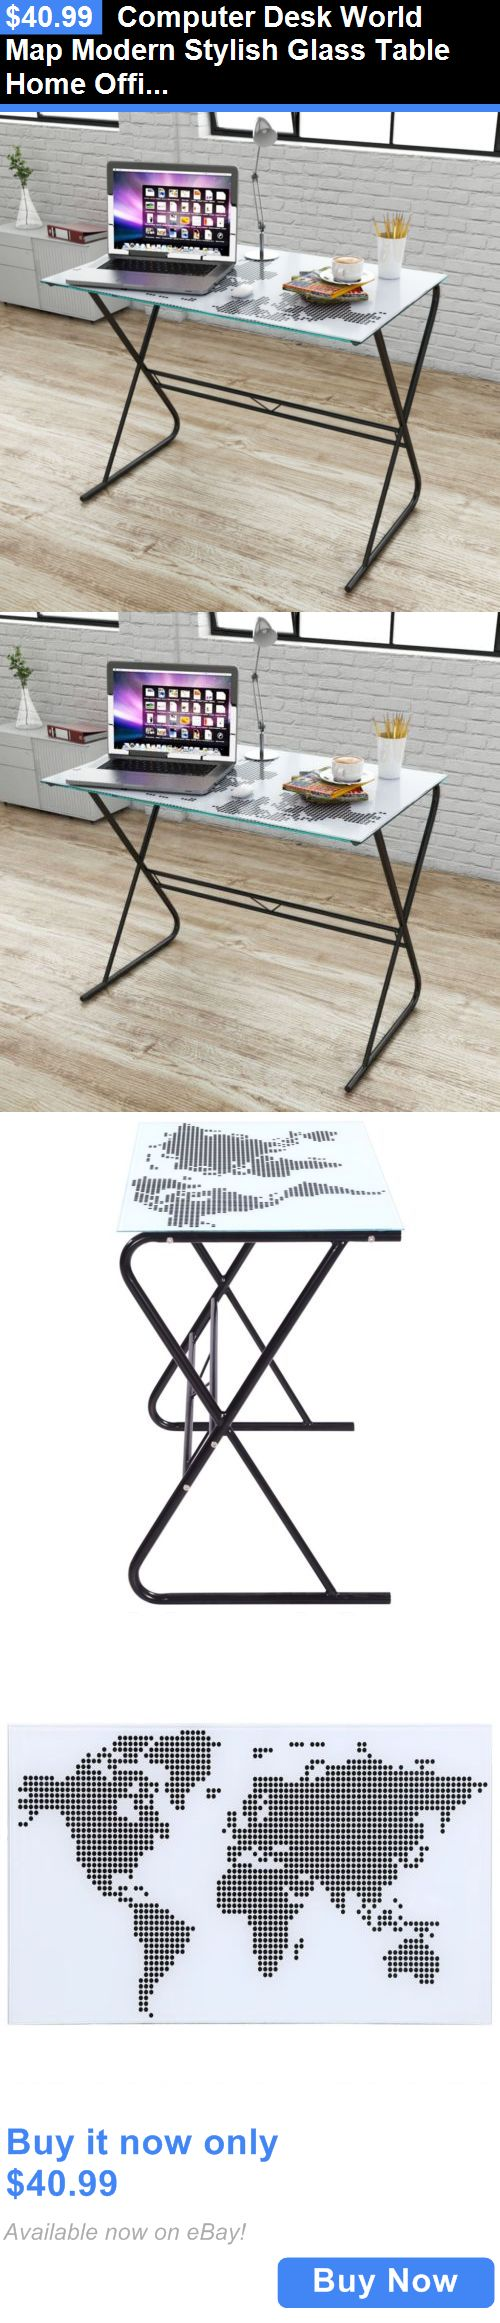 Office Furniture: Computer Desk World Map Modern Stylish Glass Table Home Office Study Furniture BUY IT NOW ONLY: $40.99